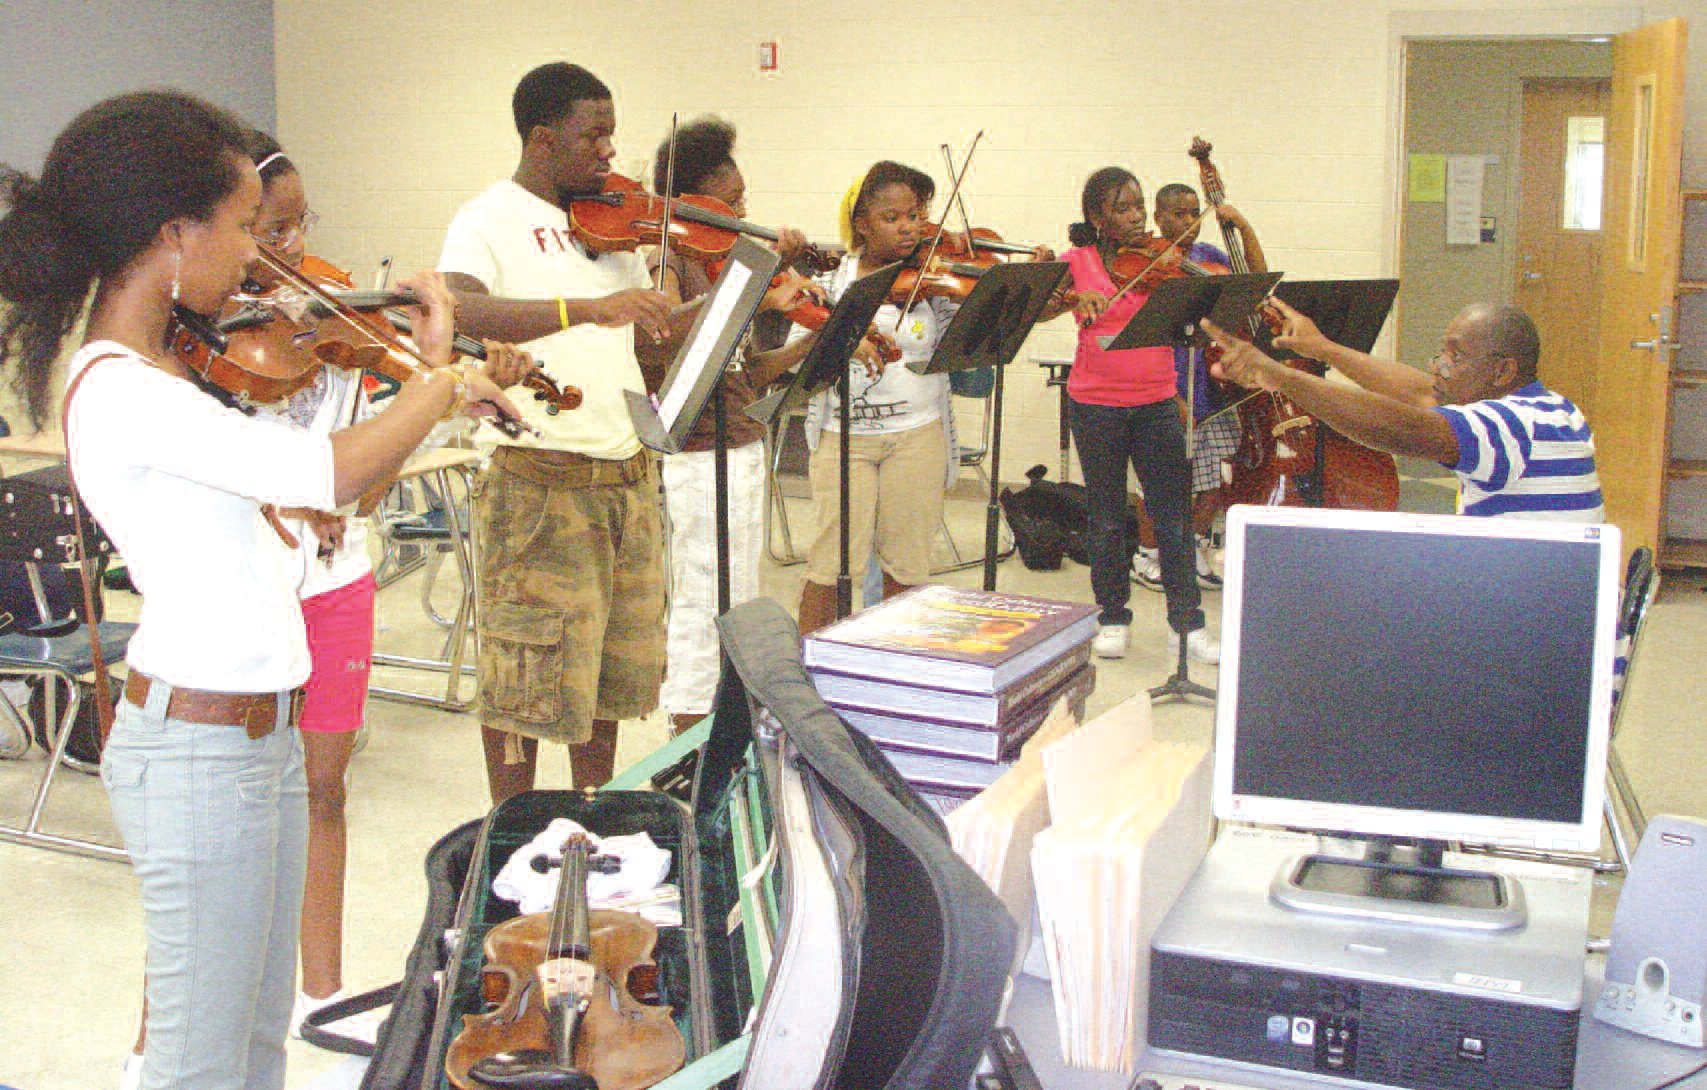 Mr. Felix Farrar instructs string students at BRAVO Camp 2011